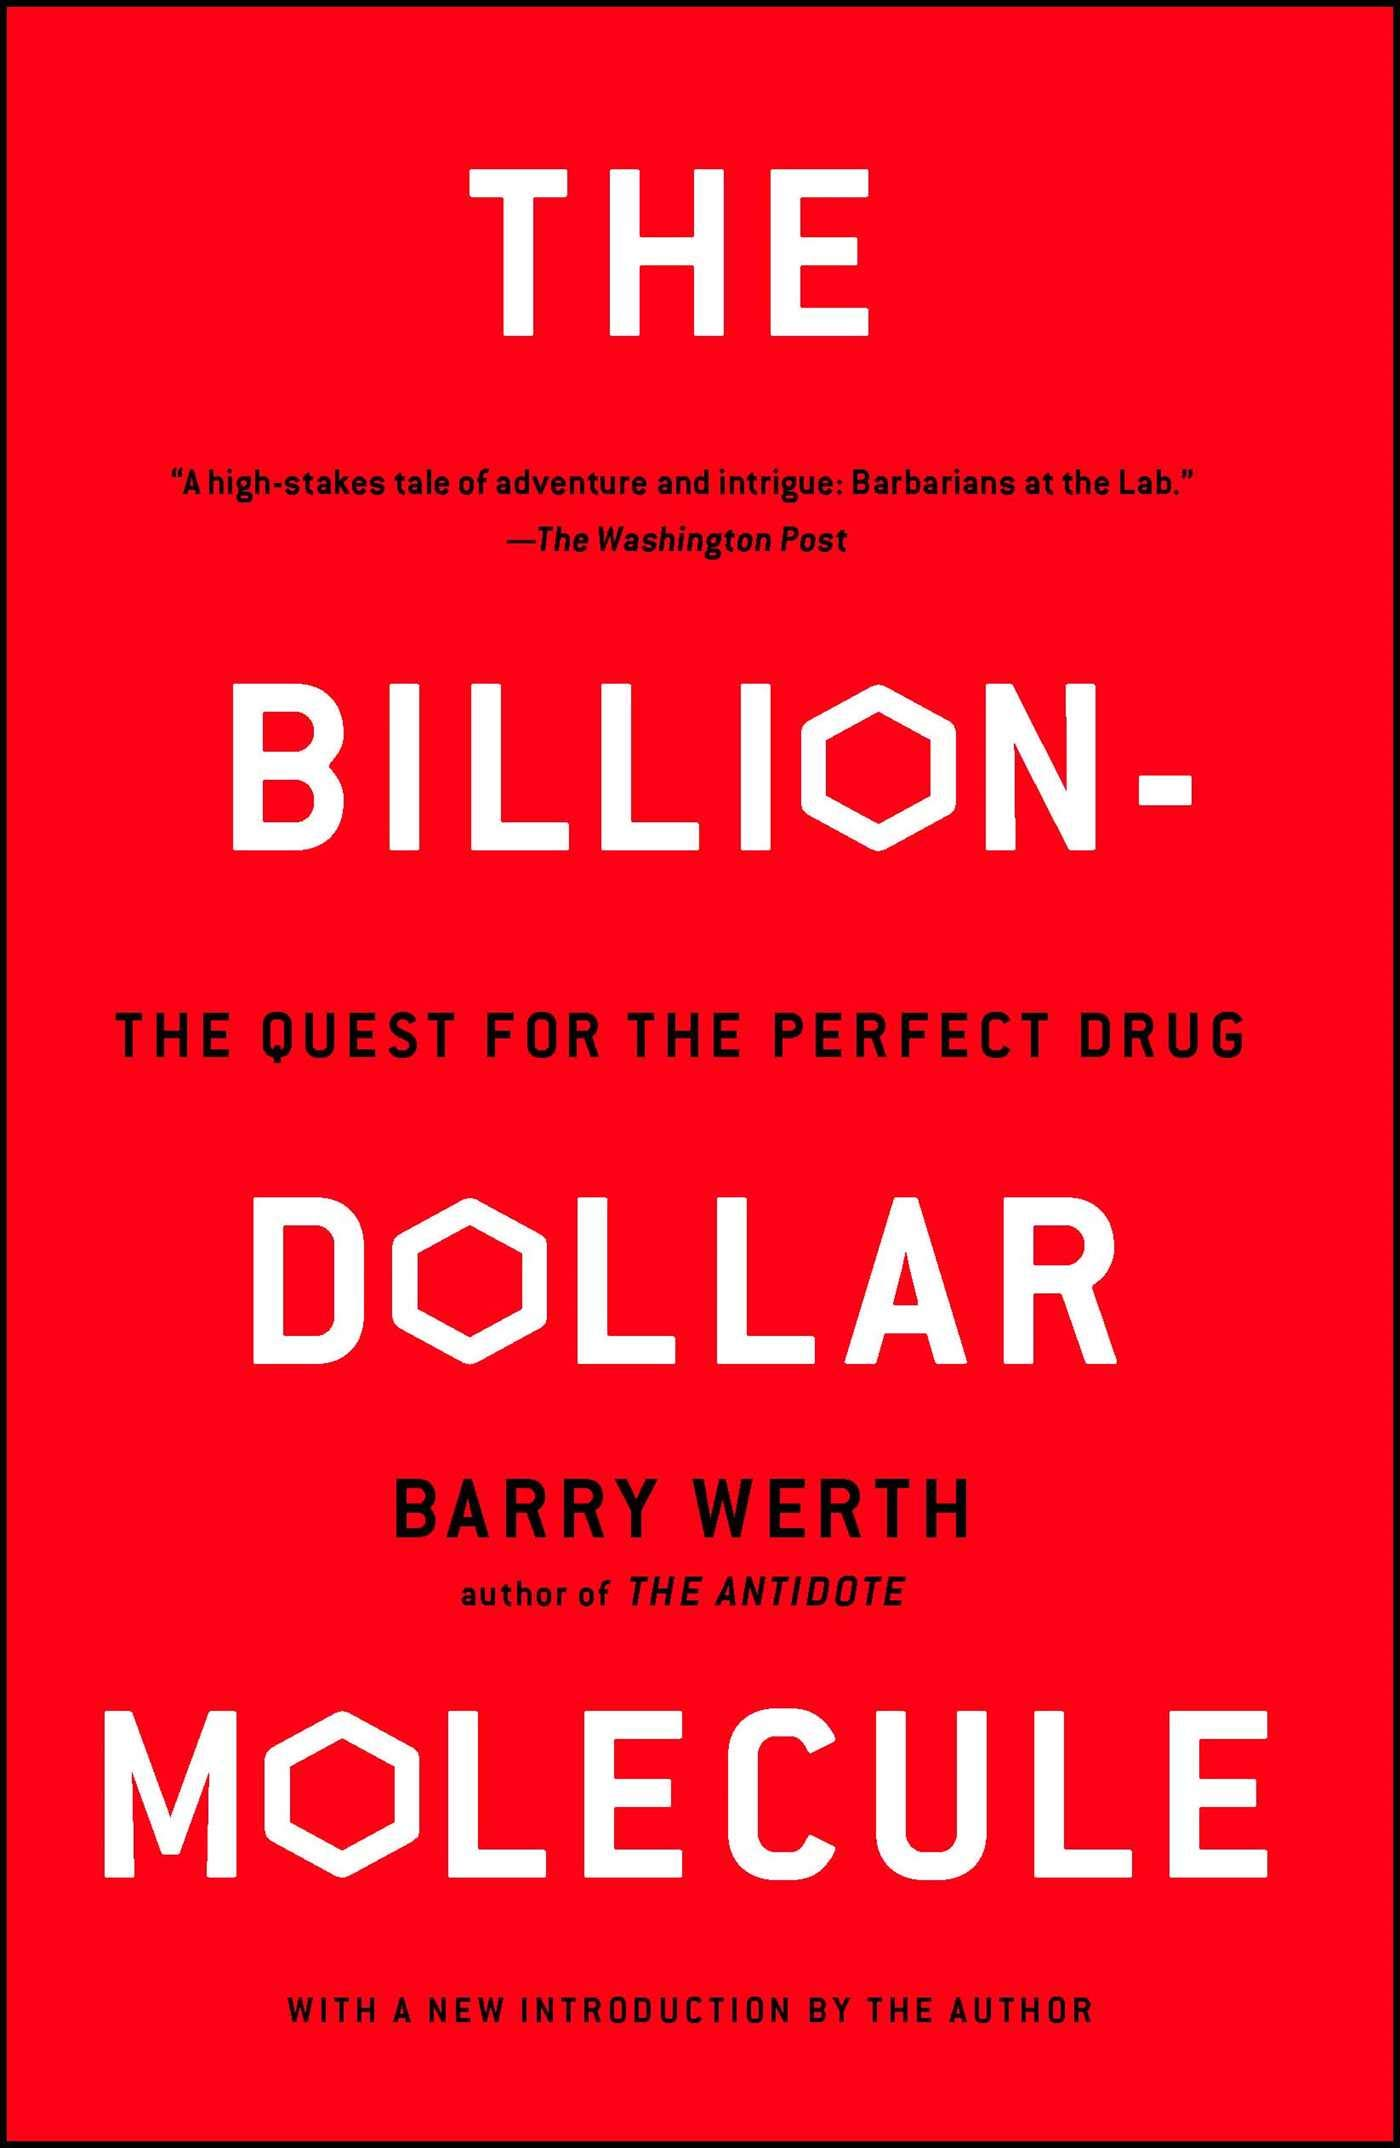 The Billion Dollar Molecule  The Quest For The Perfect Drug  One Company's Quest For The Perfect Drug  Touchstone Book